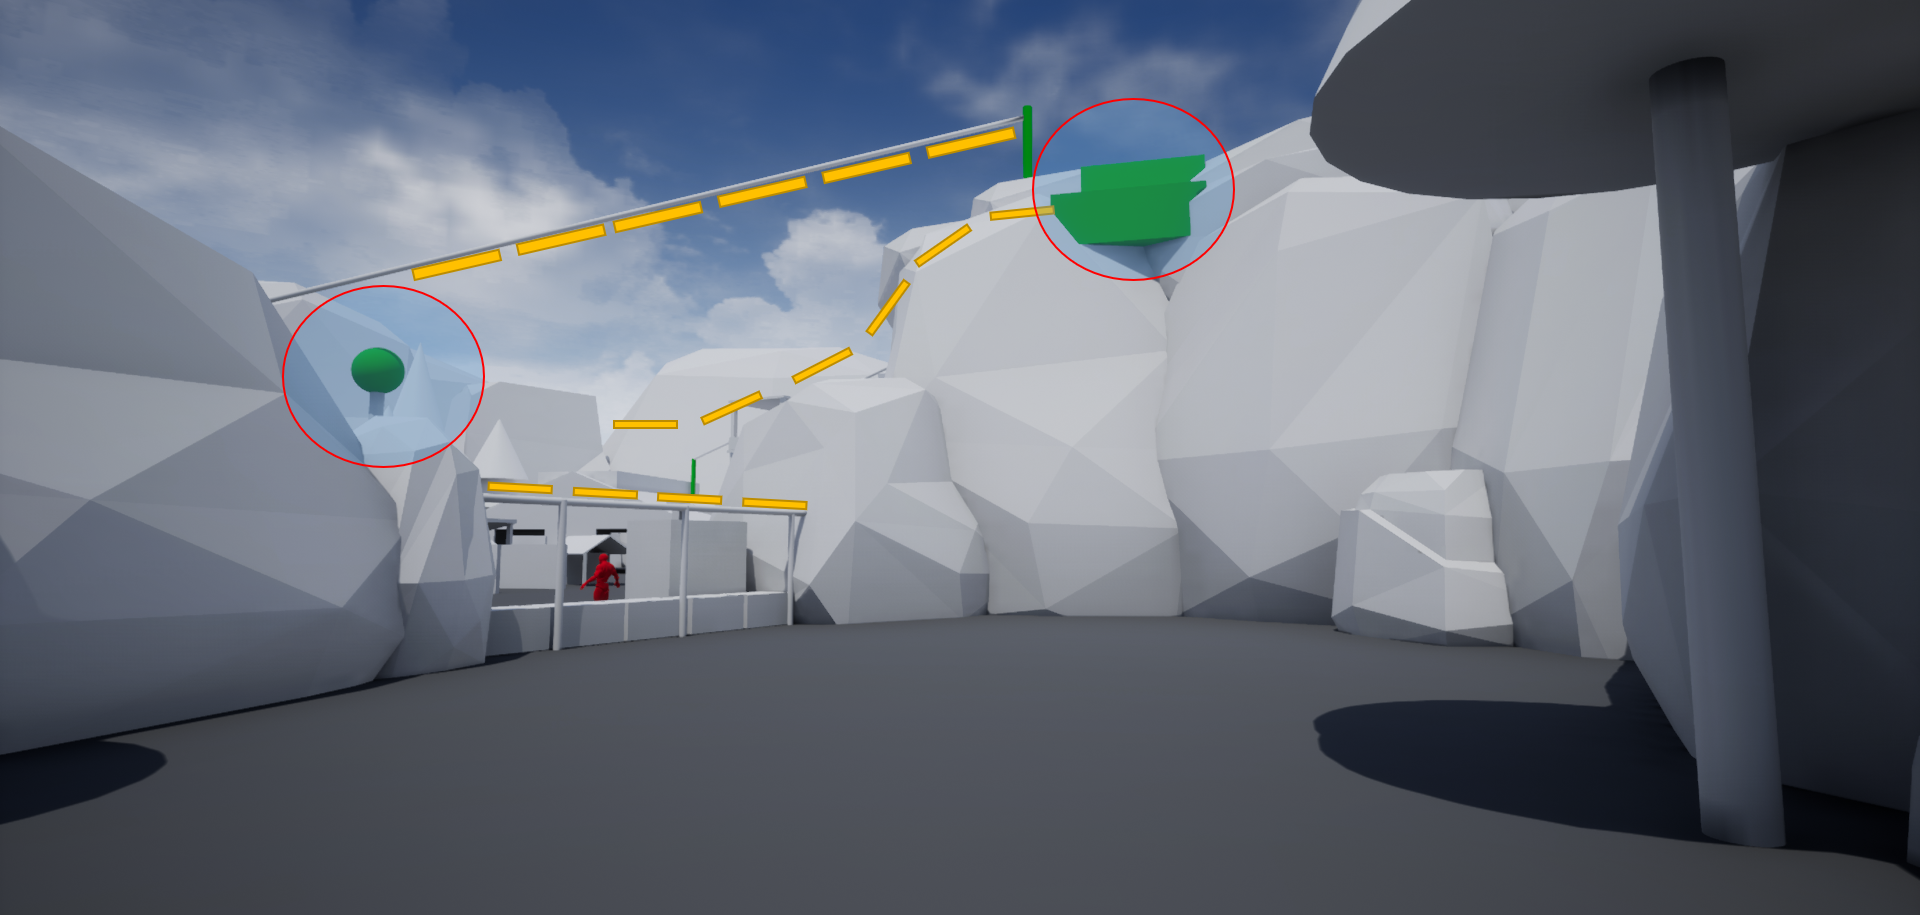 After climbing the wall, players eyes are directed to the flashing green light on the left. Indicating the position of the outpost